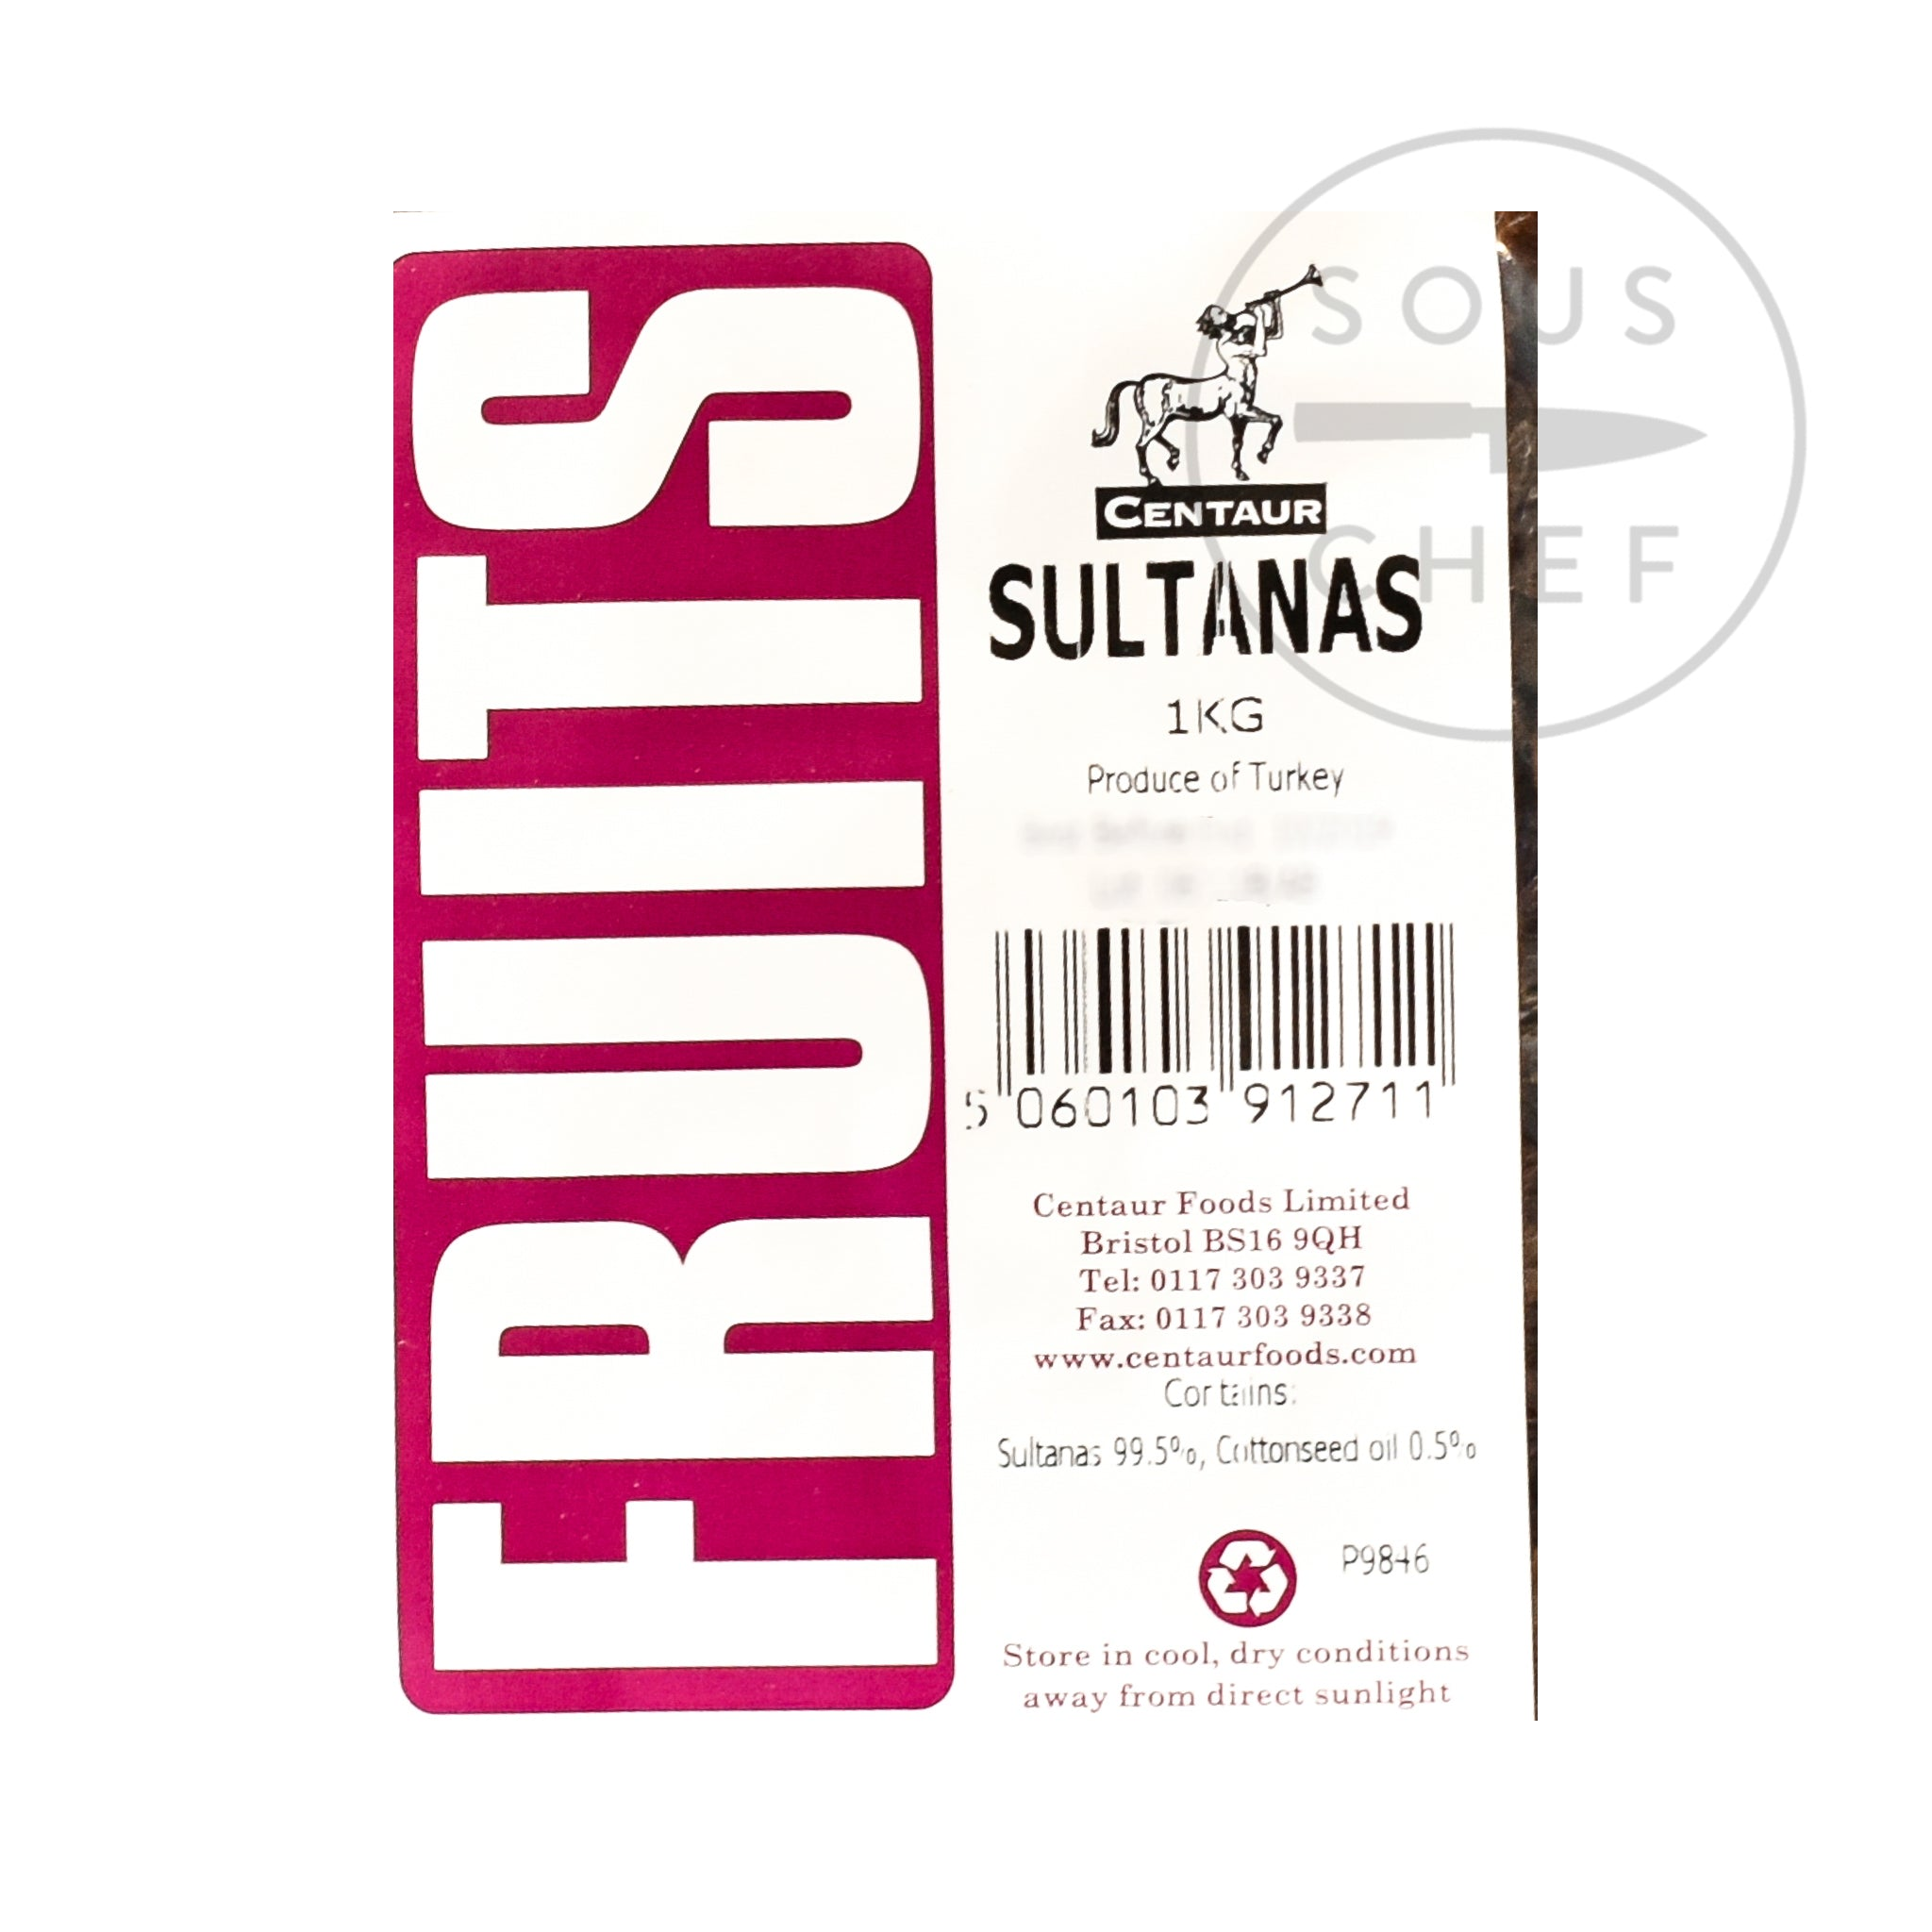 Sultanas 1kg ingredients